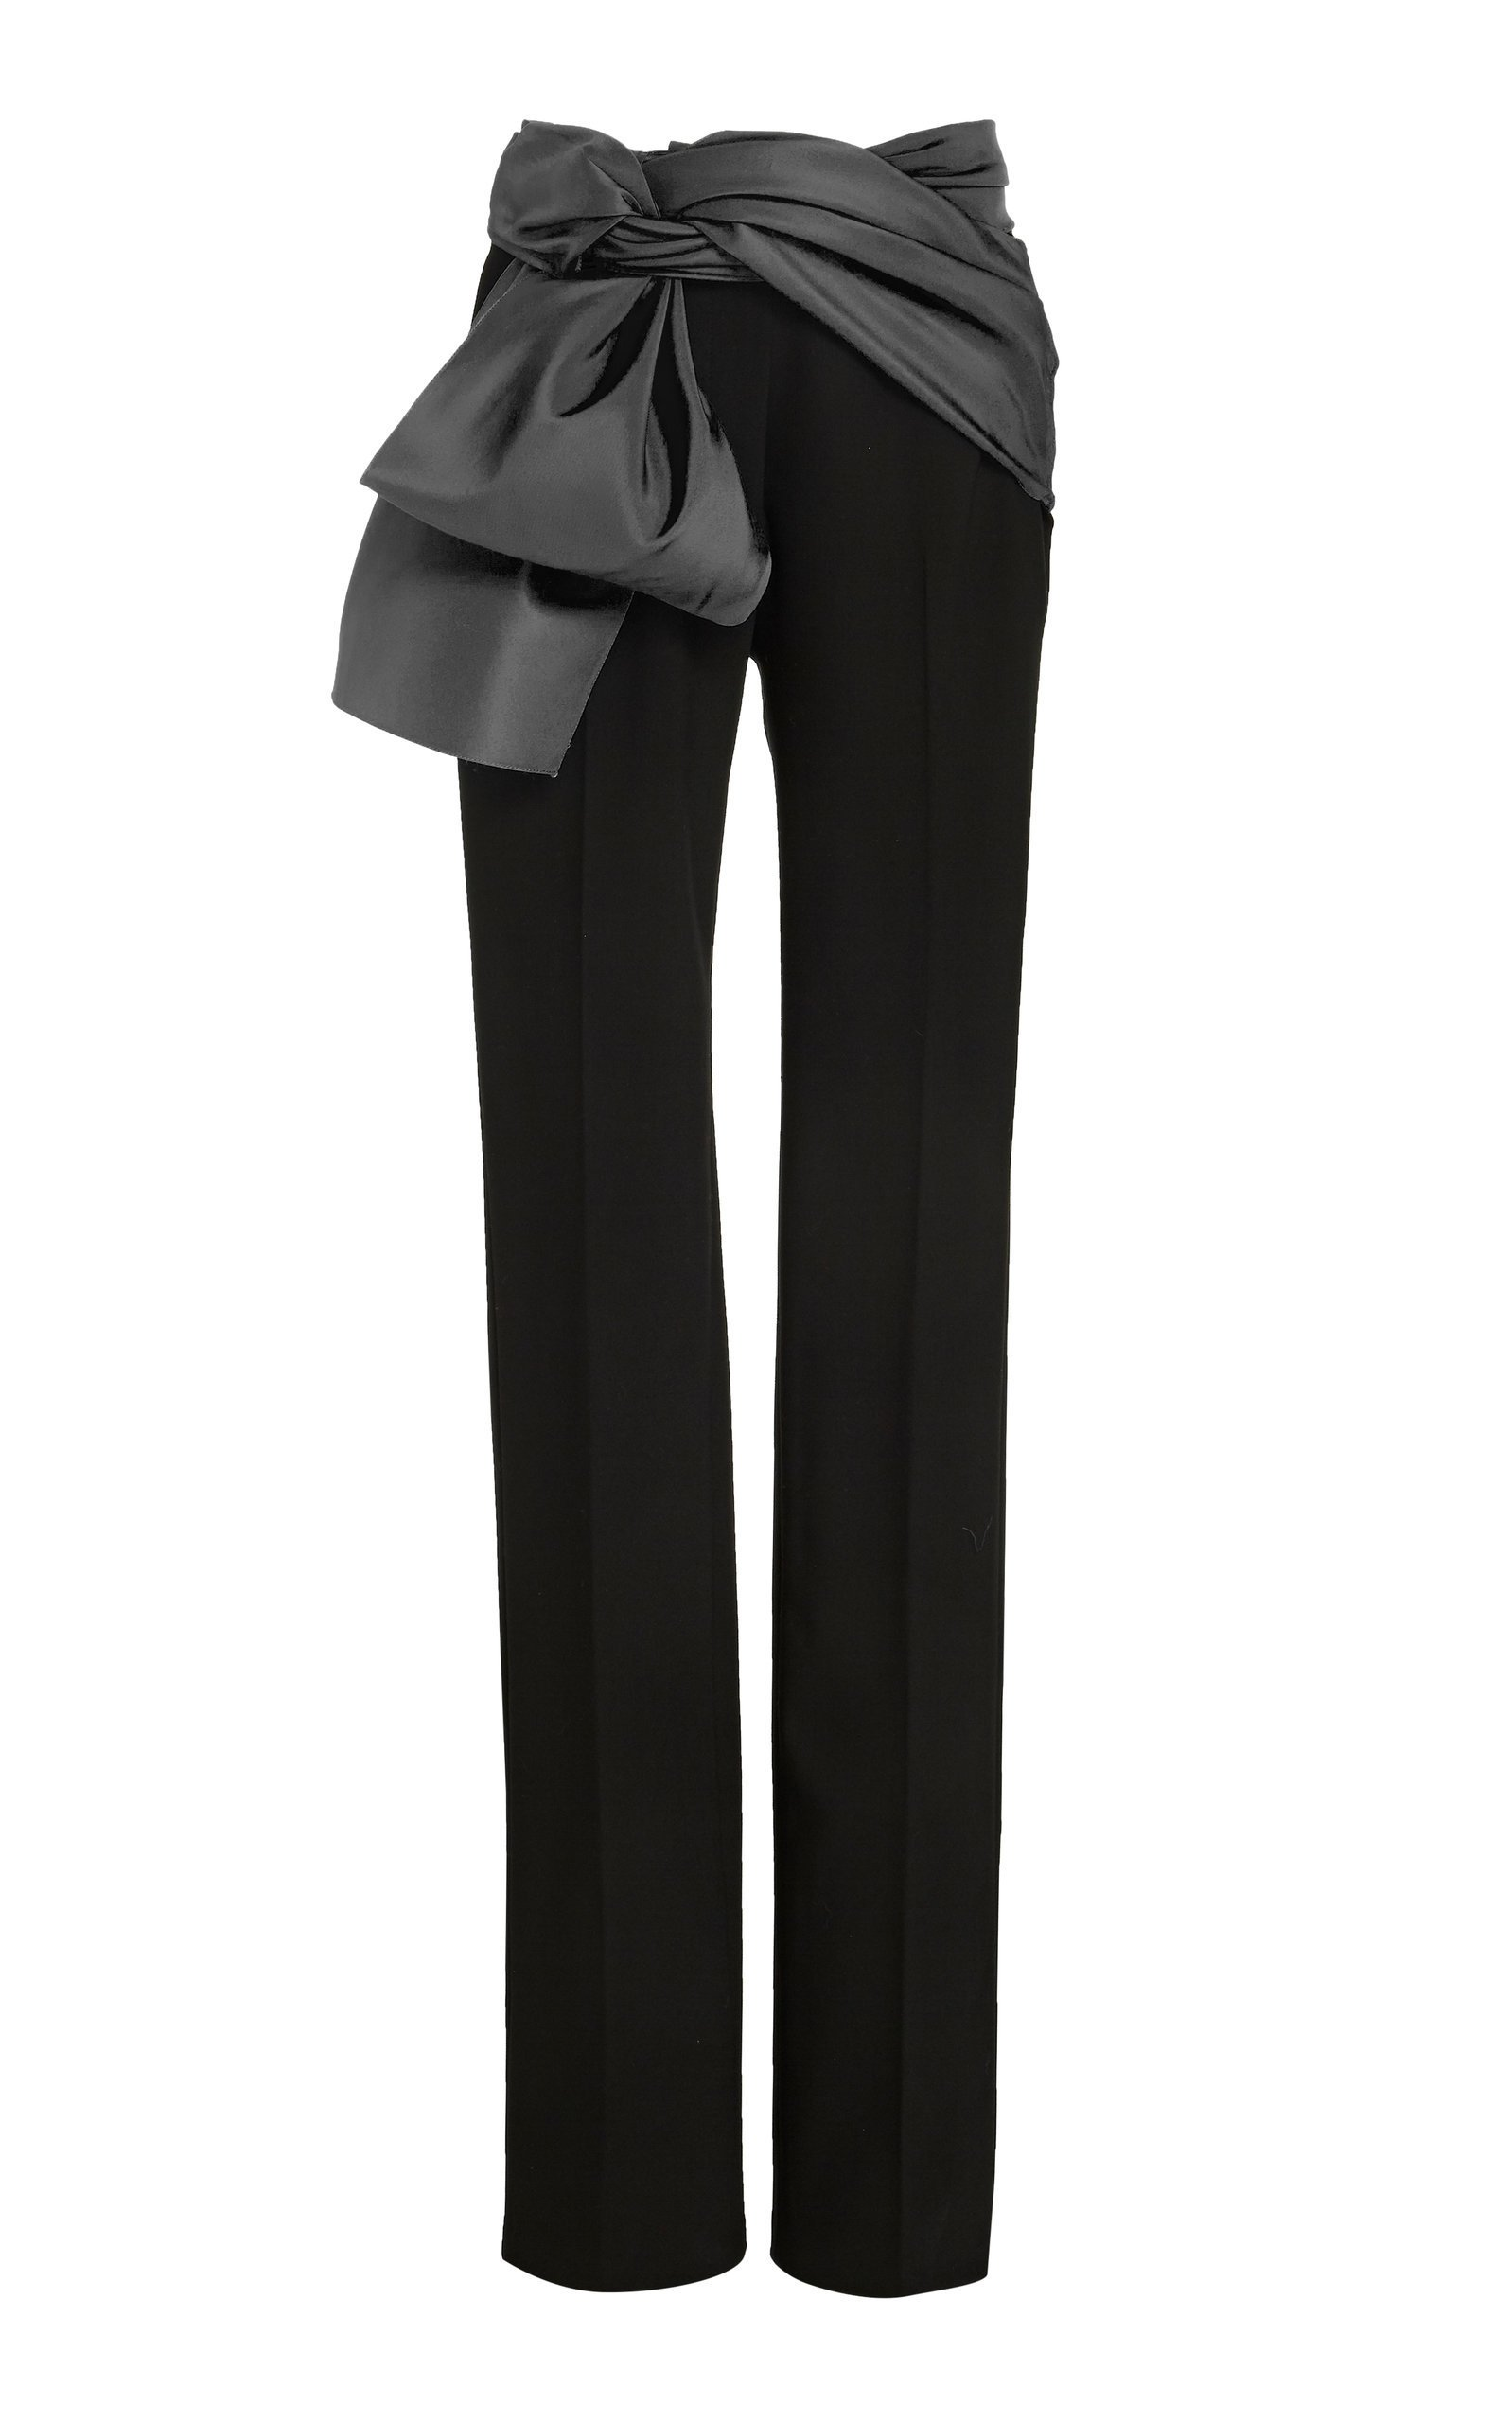 Carolina Herrera Satin-Trimmed Crepe Straight-Leg Pants Size: 10